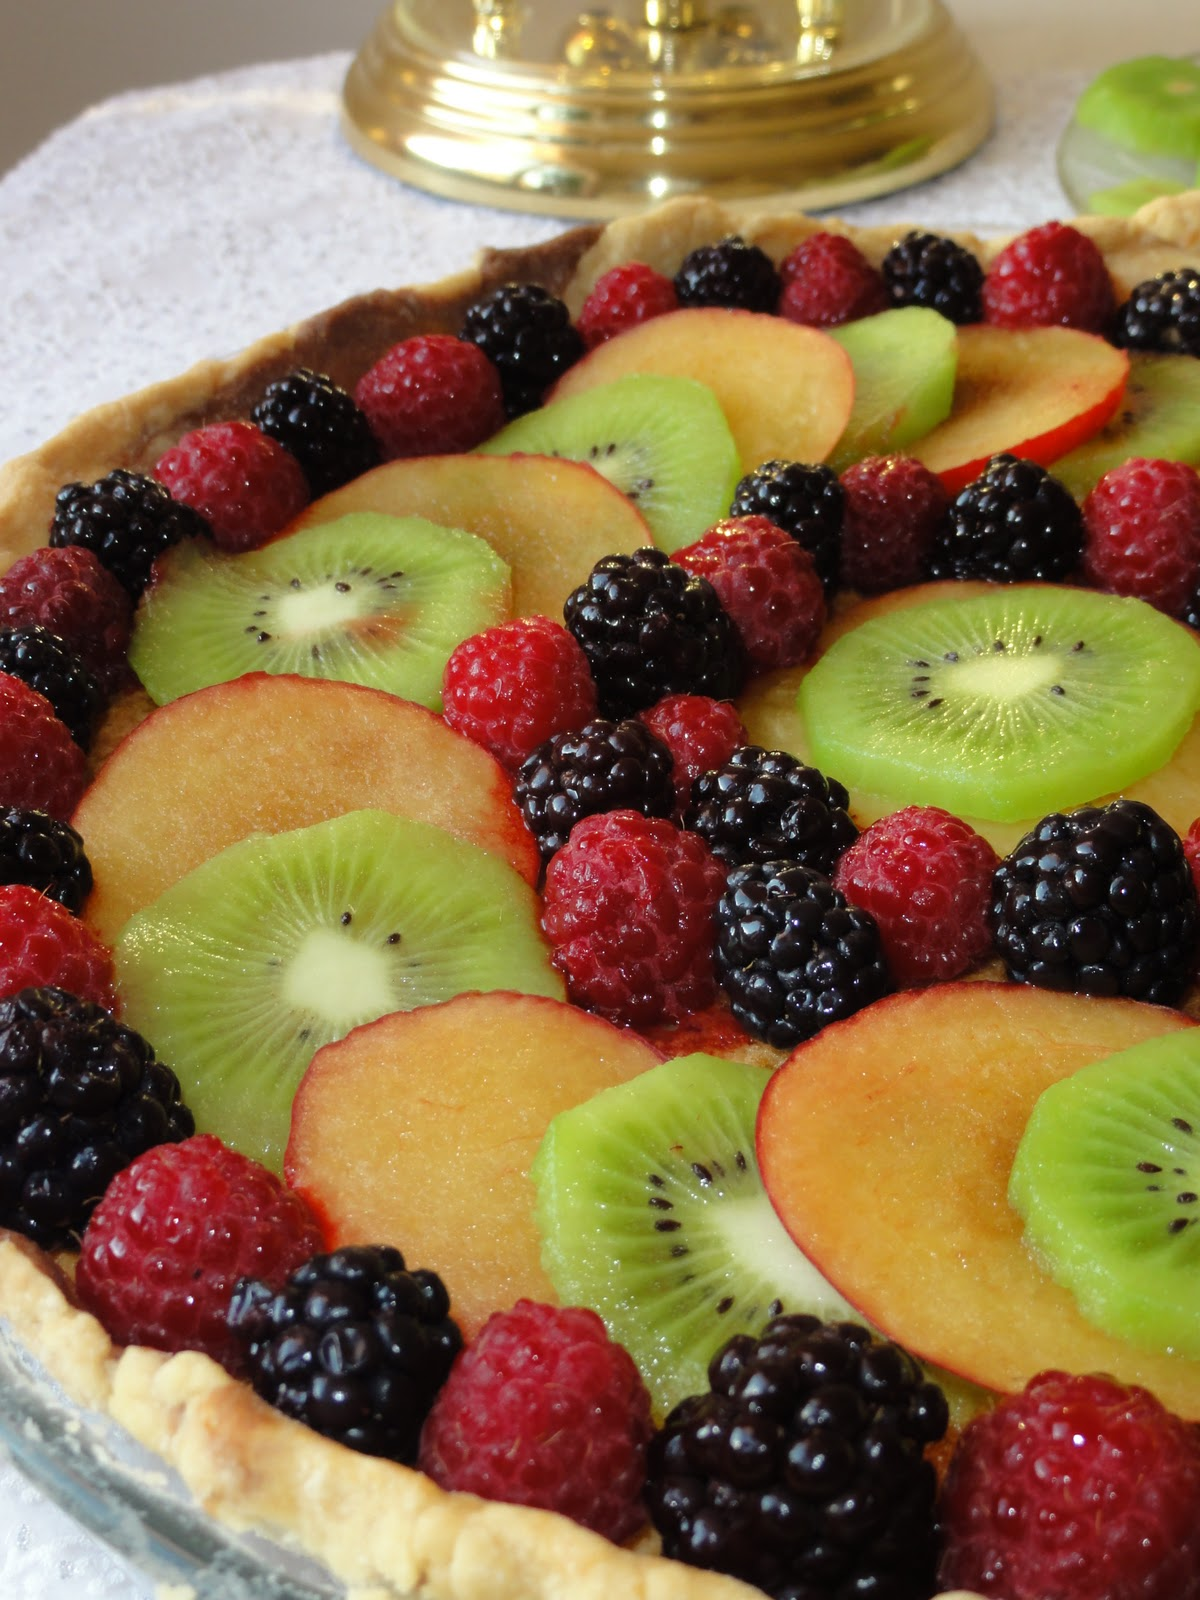 Pate+Brisee+Peaches Rathai's Recipes: Fruit frangipane tart